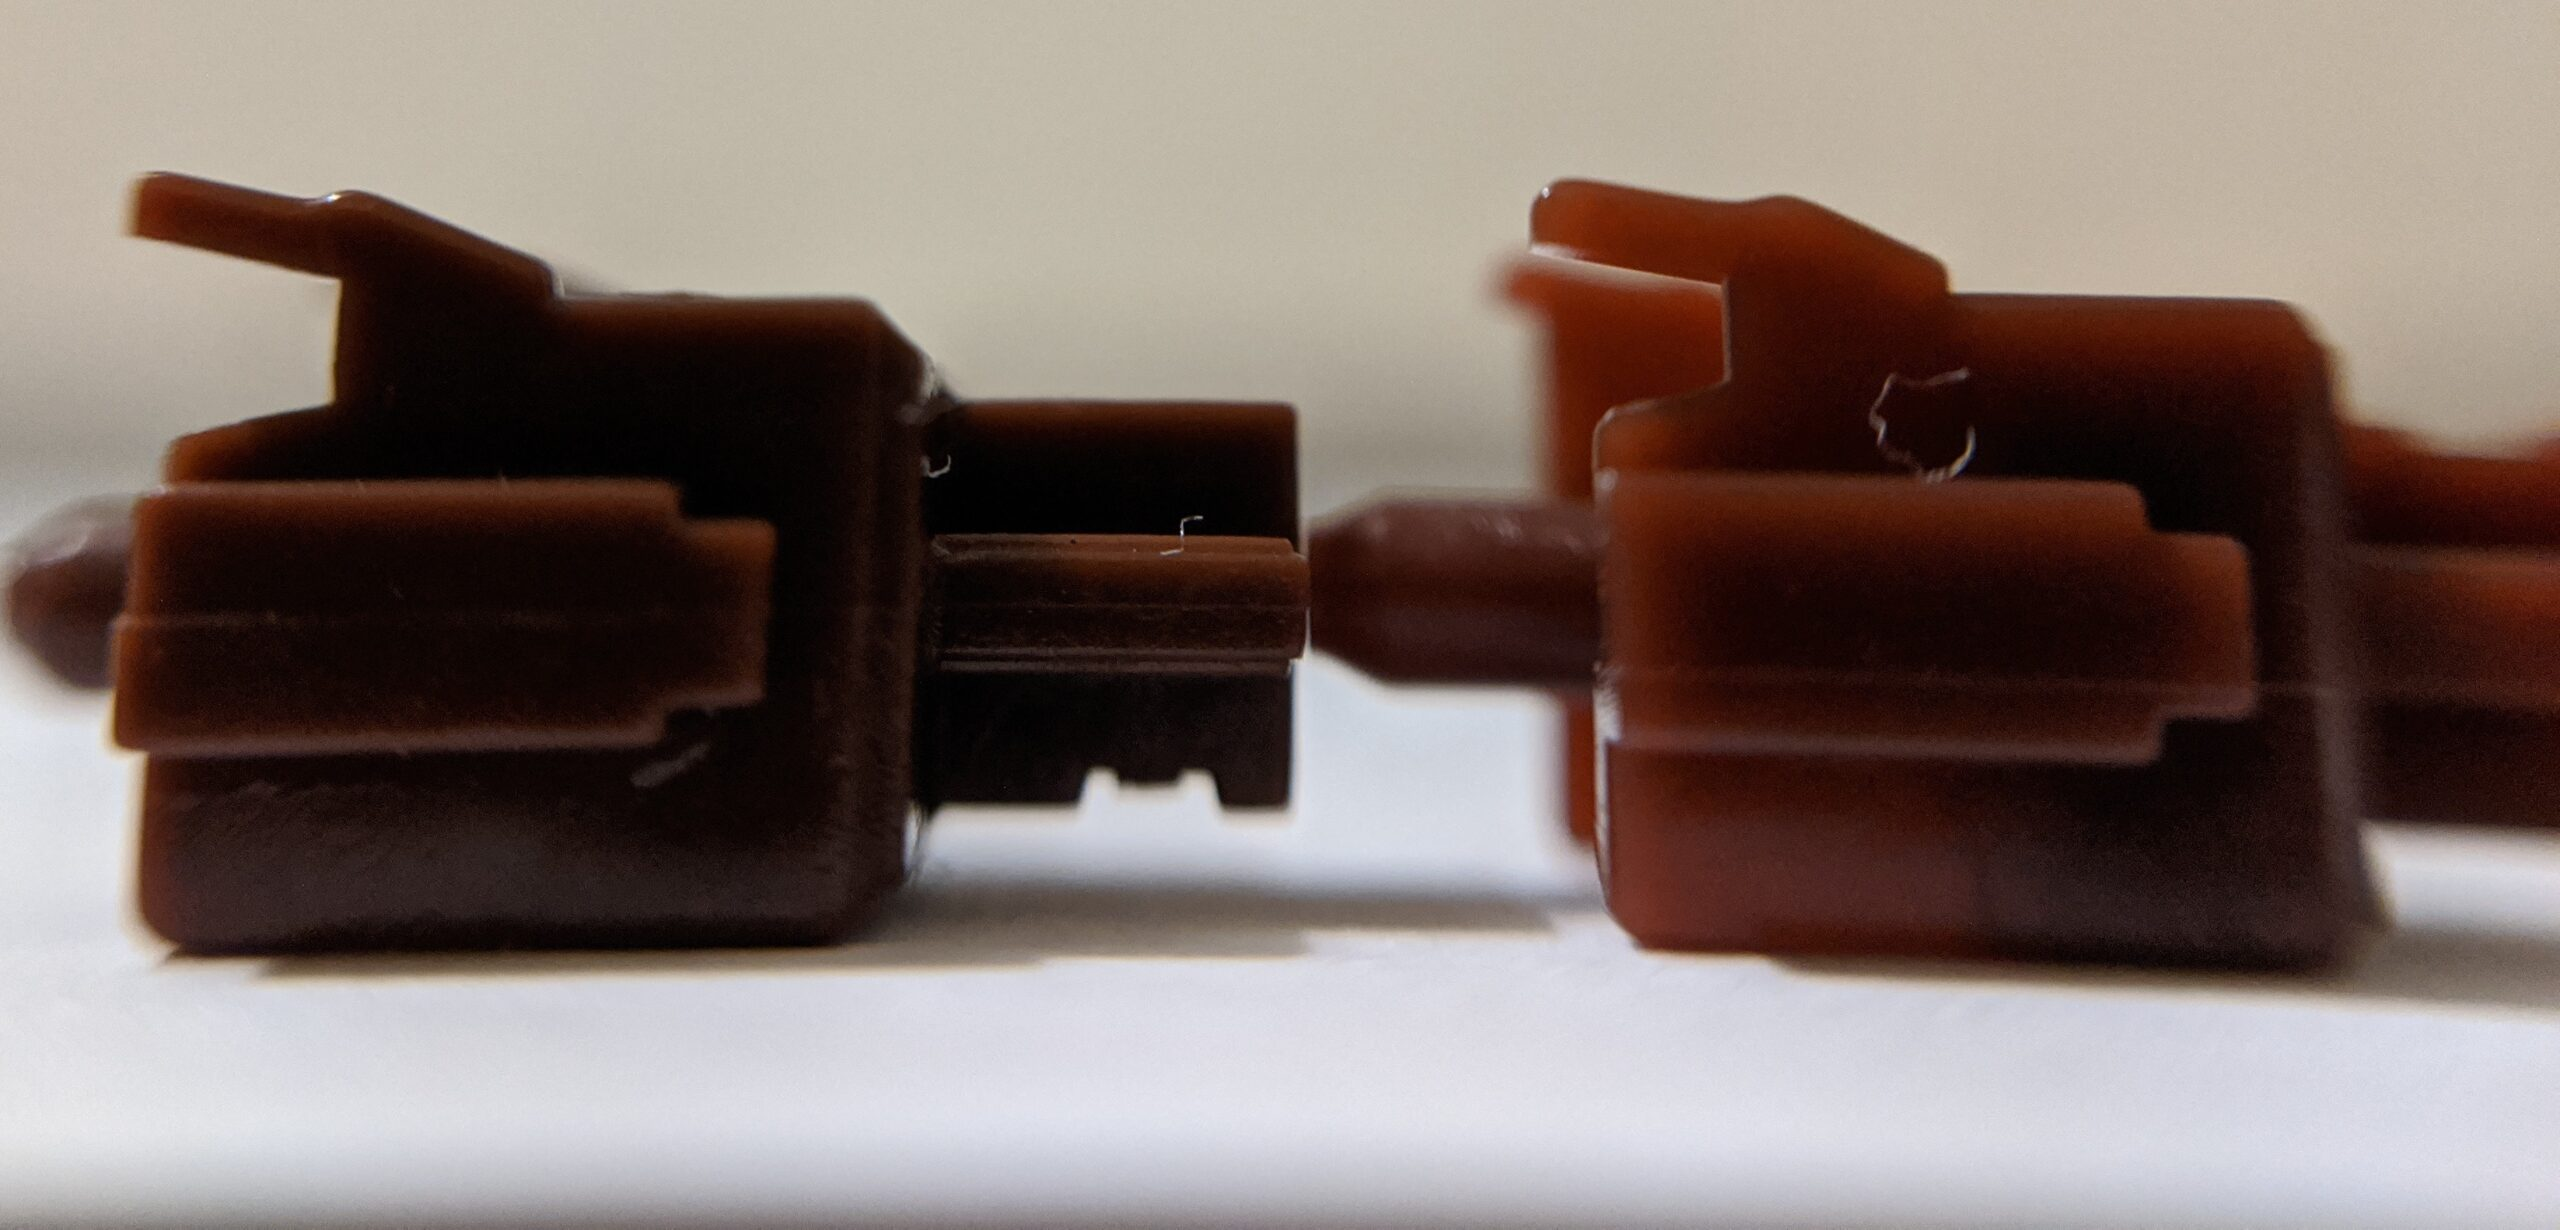 Greetech Brown and Gateron Brown side stem comparison